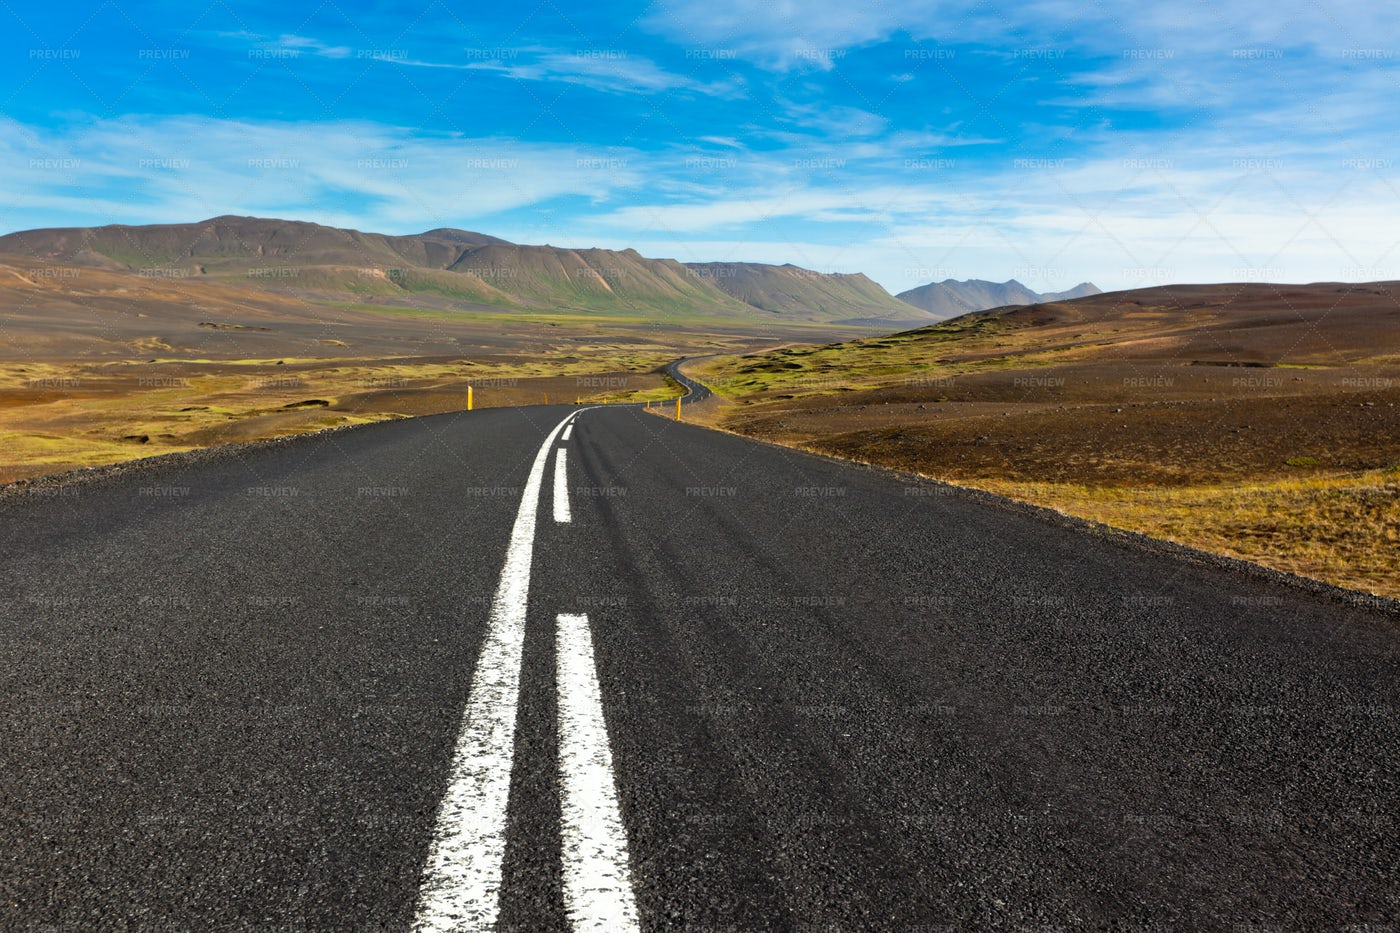 Highway In The Mountains: Stock Photos